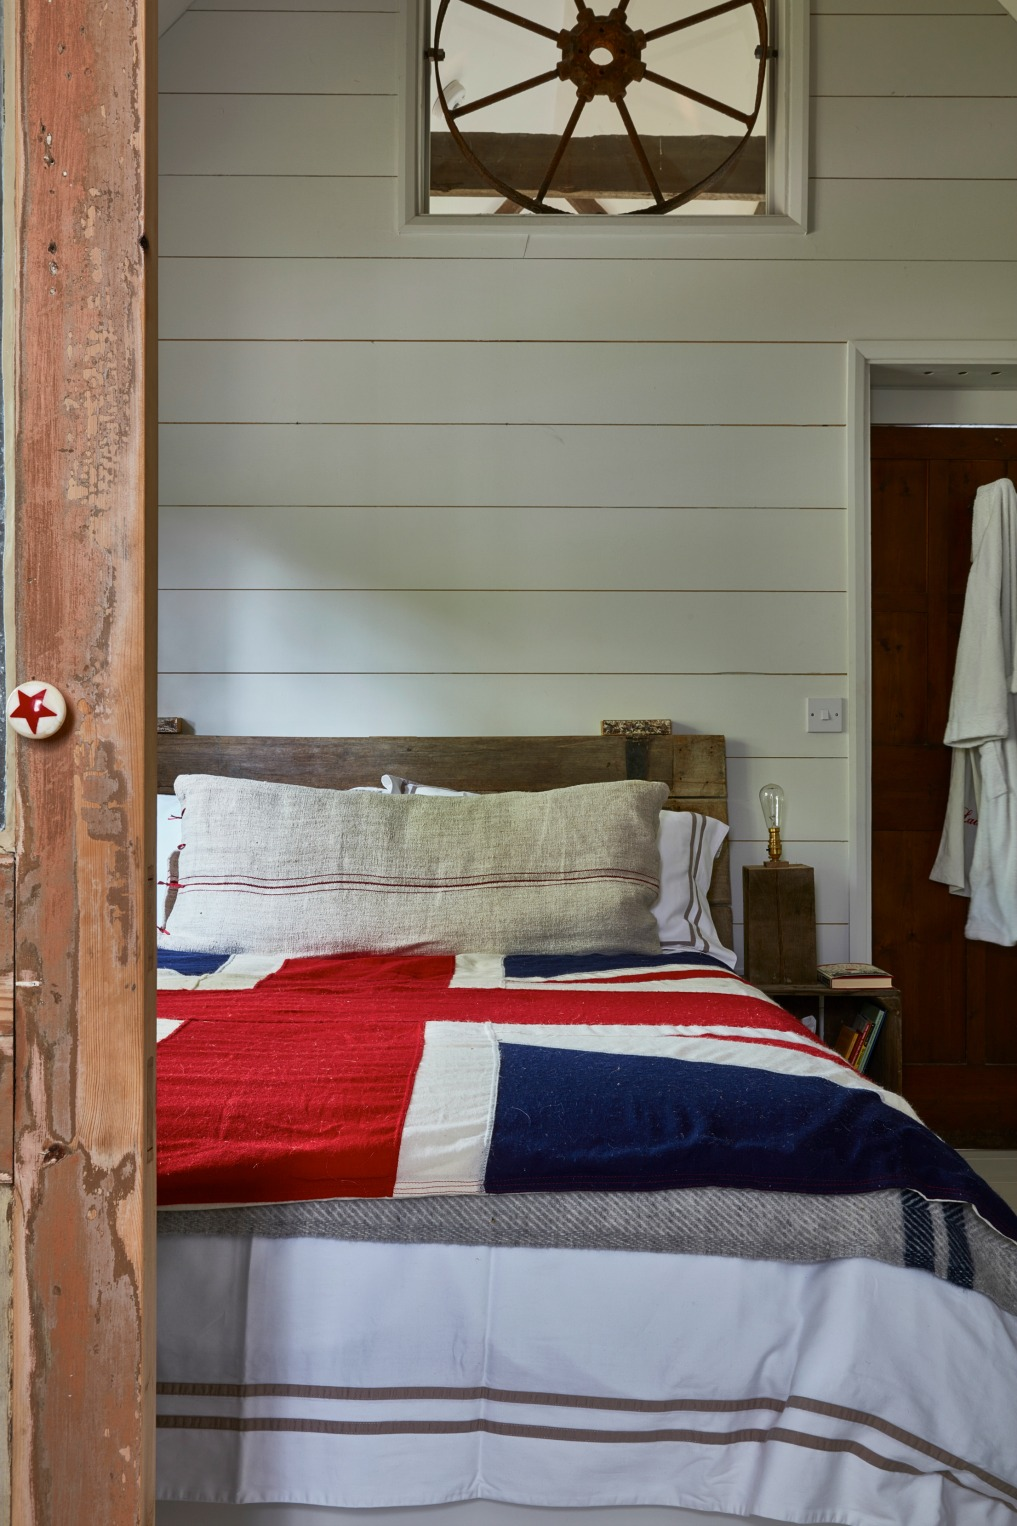 Antique cottage bedroom with planked walls and union jack bedspread kellyelko.com